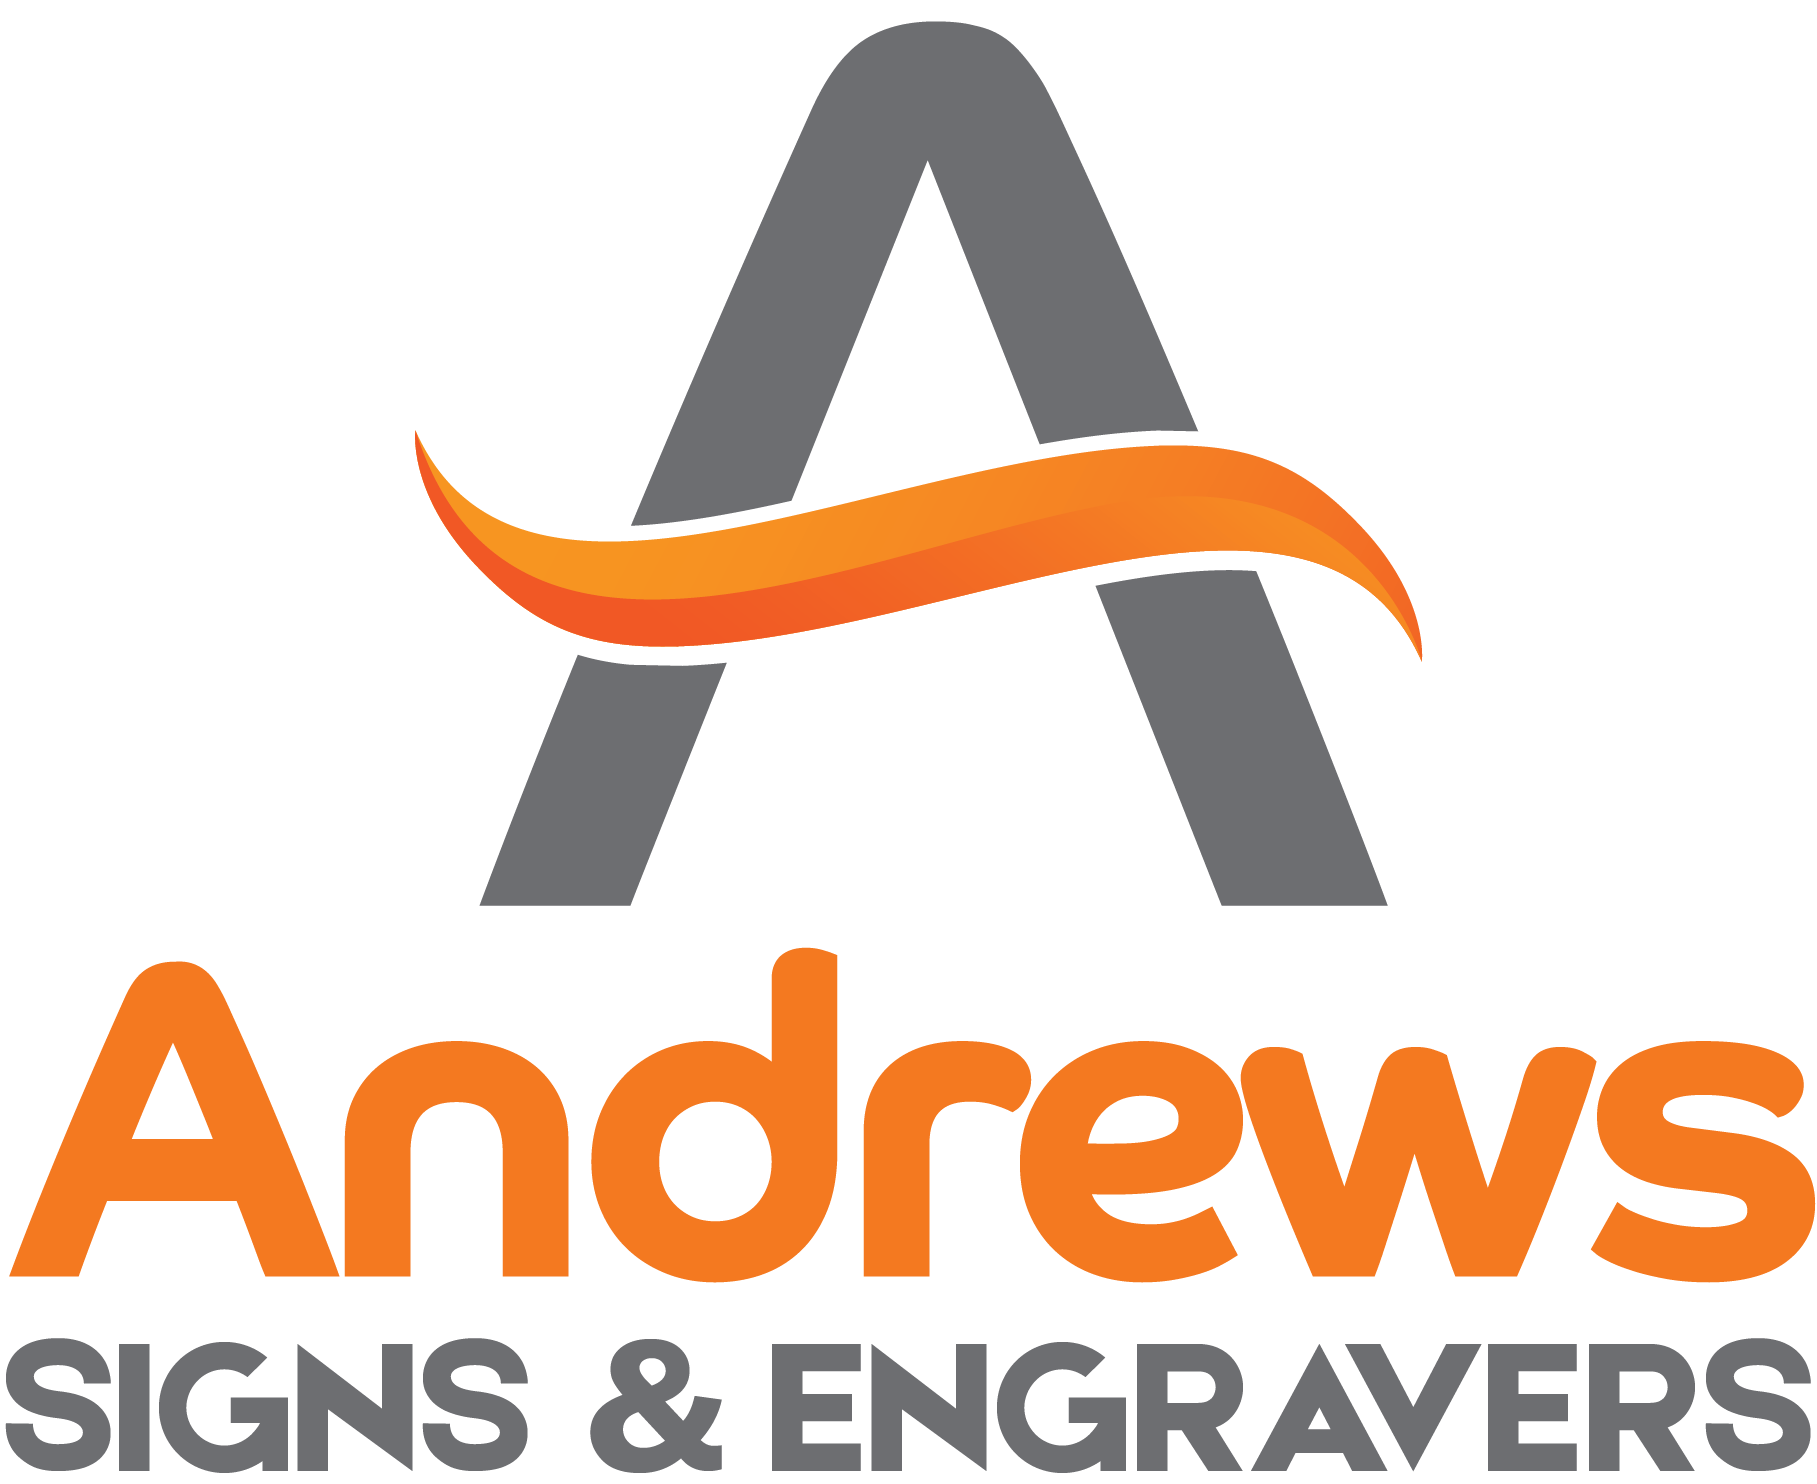 Andrews Signs & Engravers Ltd